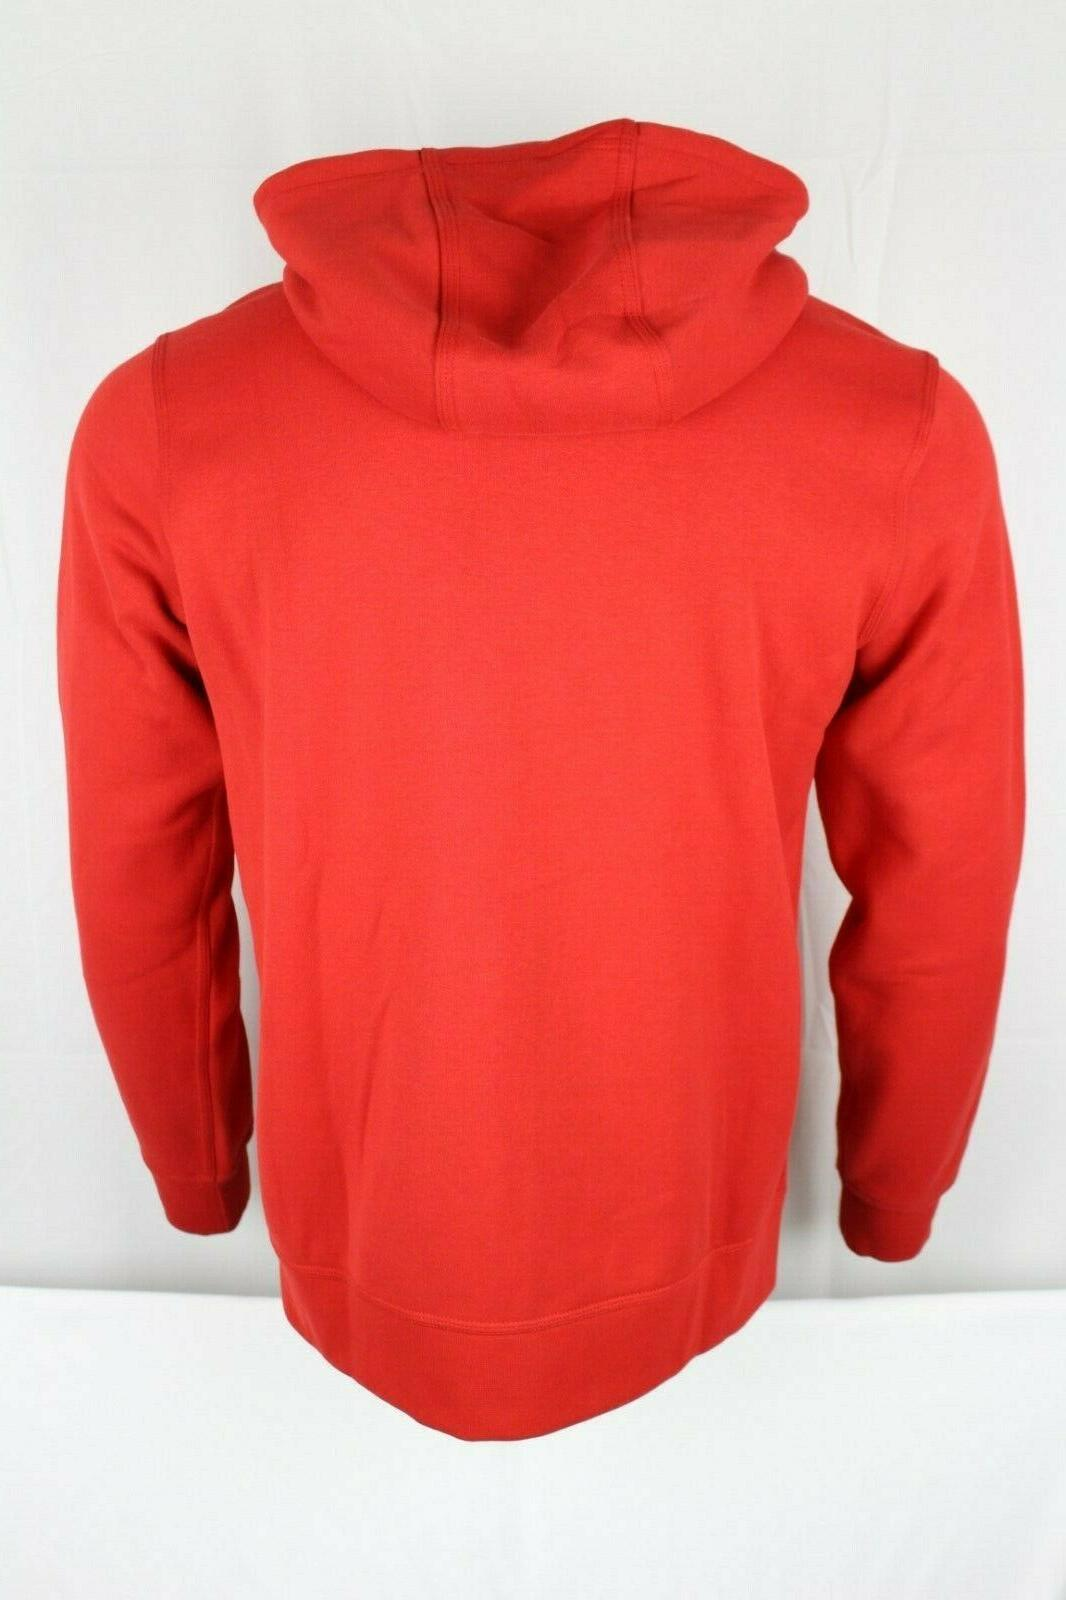 New Nike Club Full Zip Red Hoodie Sweatshirt